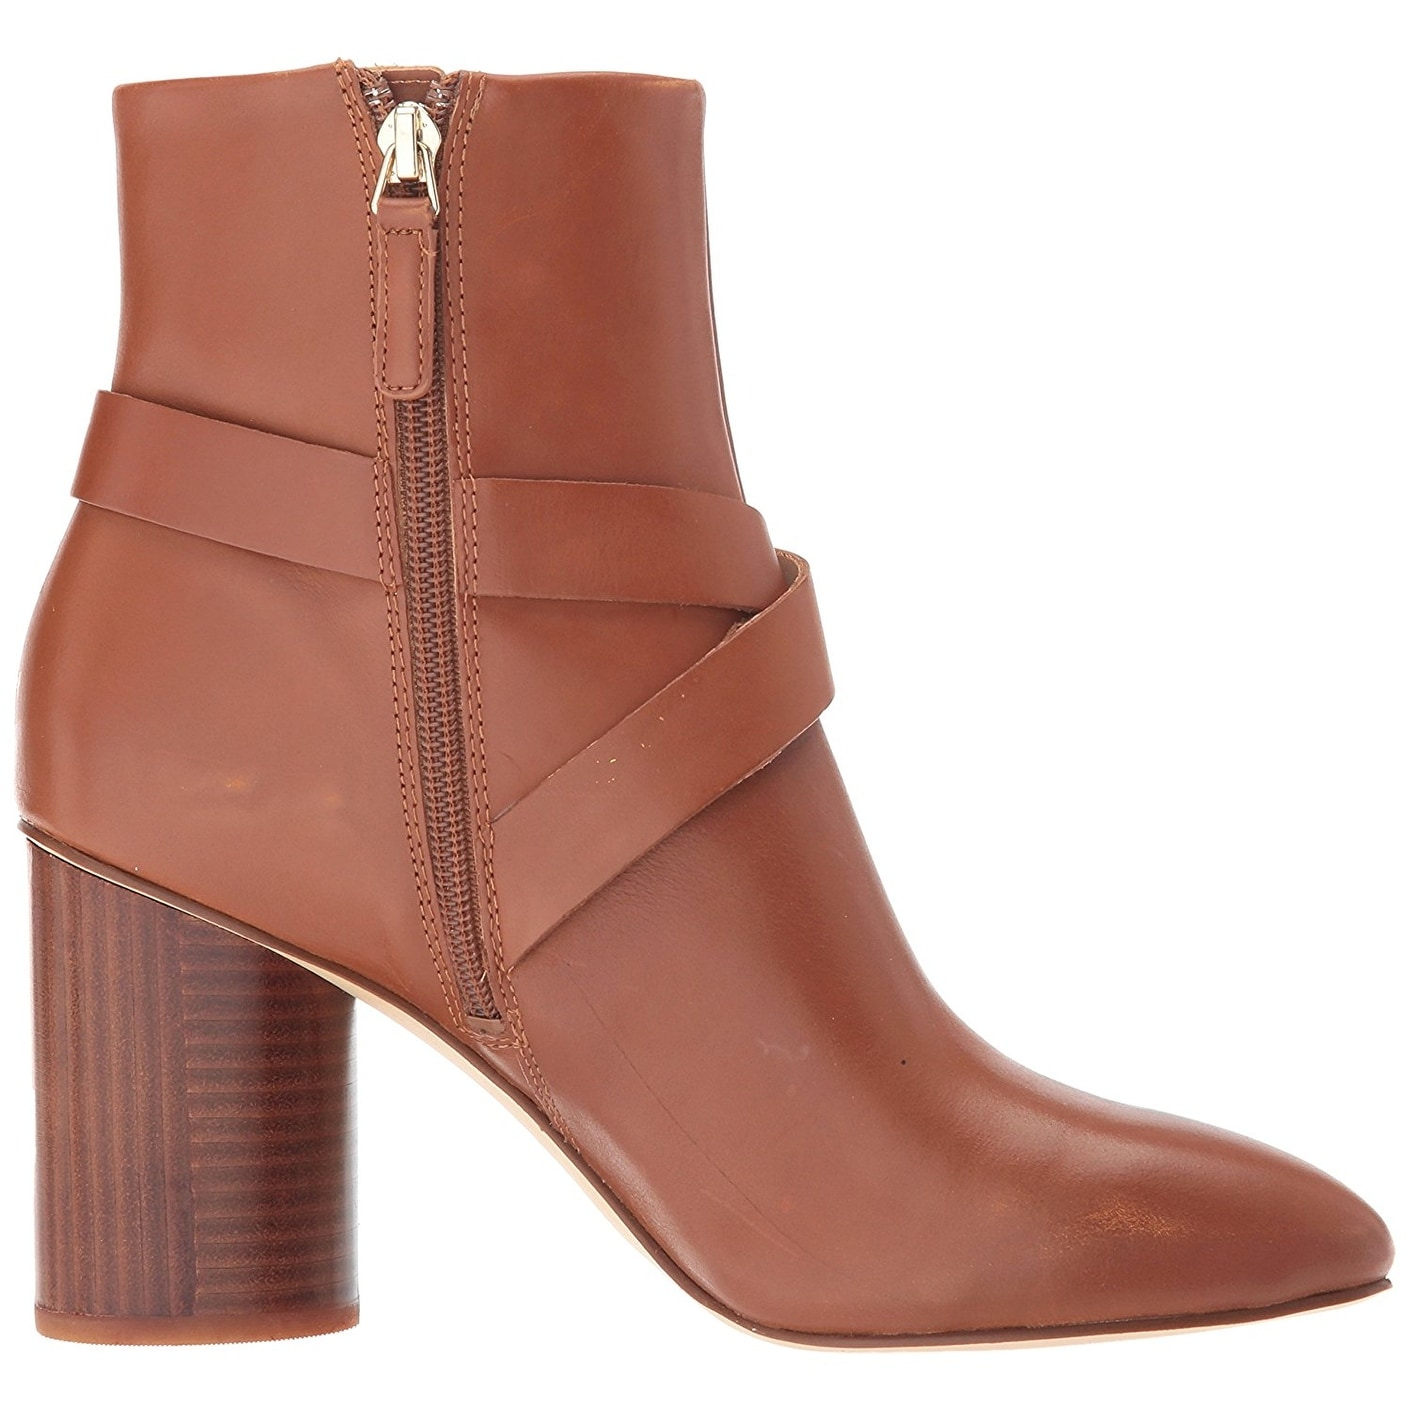 NINE WEST Womens Cavanagh Ankle Boot